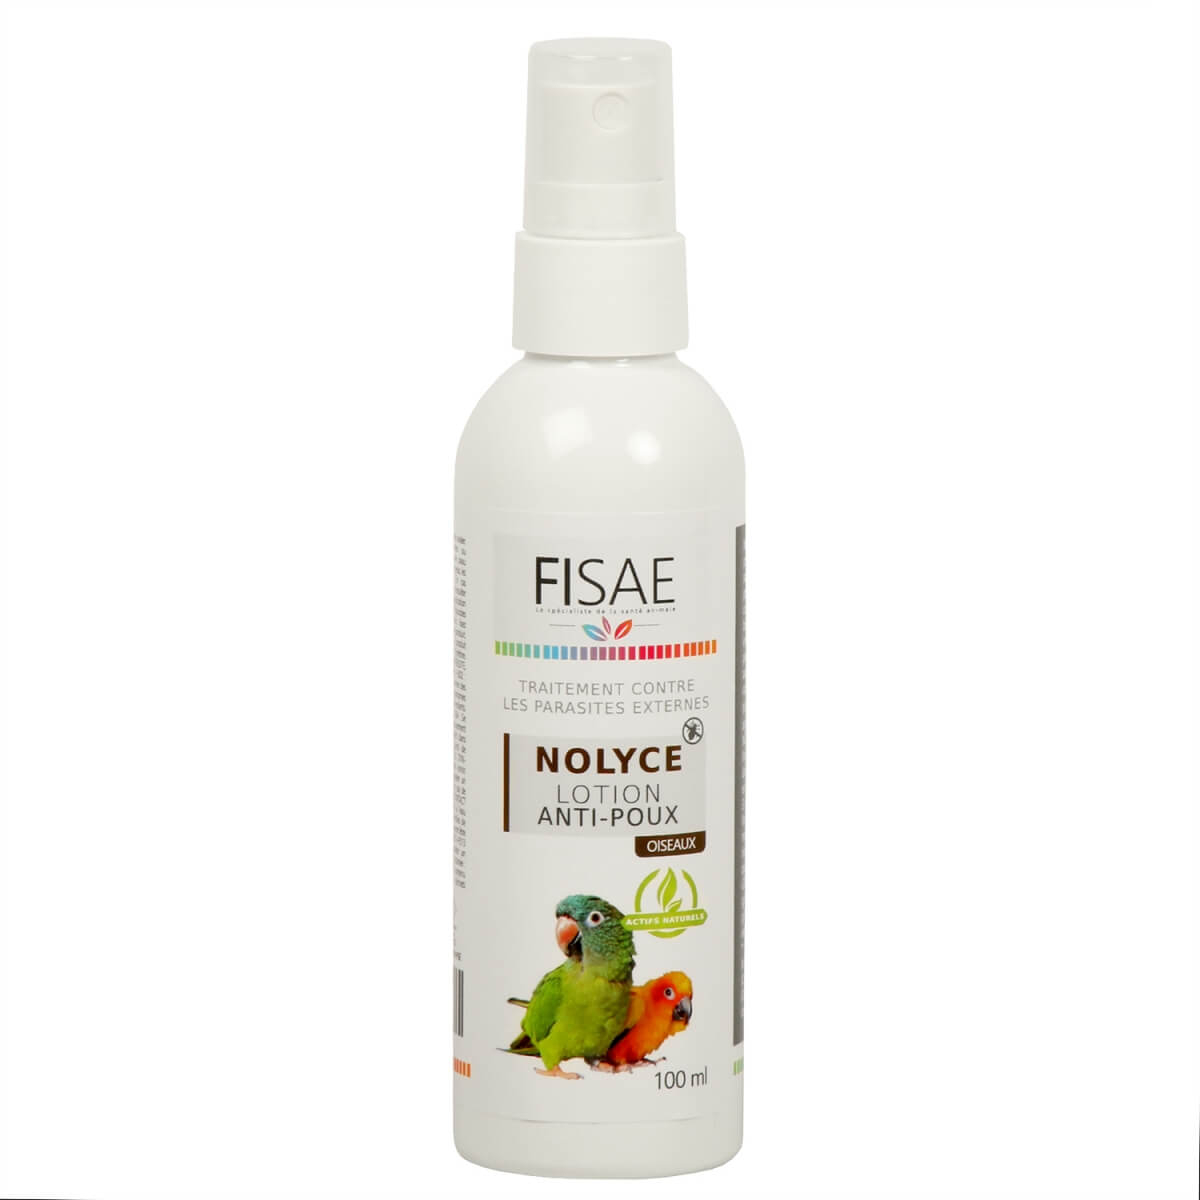 FISAE NOLYCE Bird Lice Lotion_0